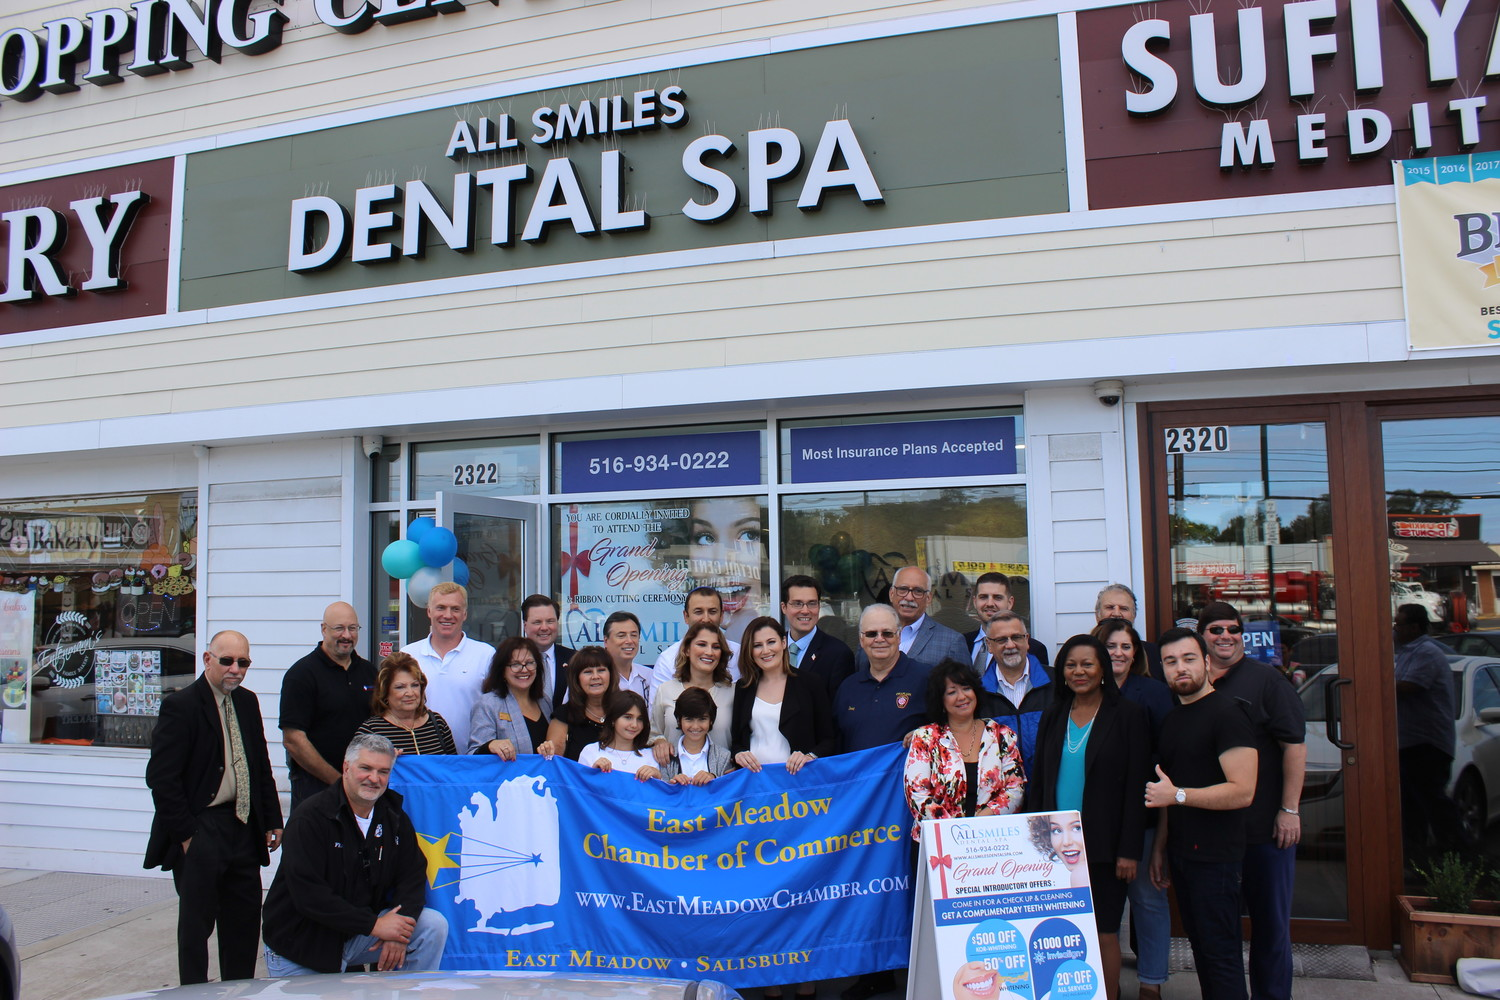 Chamber welcomes All Smiles Dental Spa and SoBol | Herald